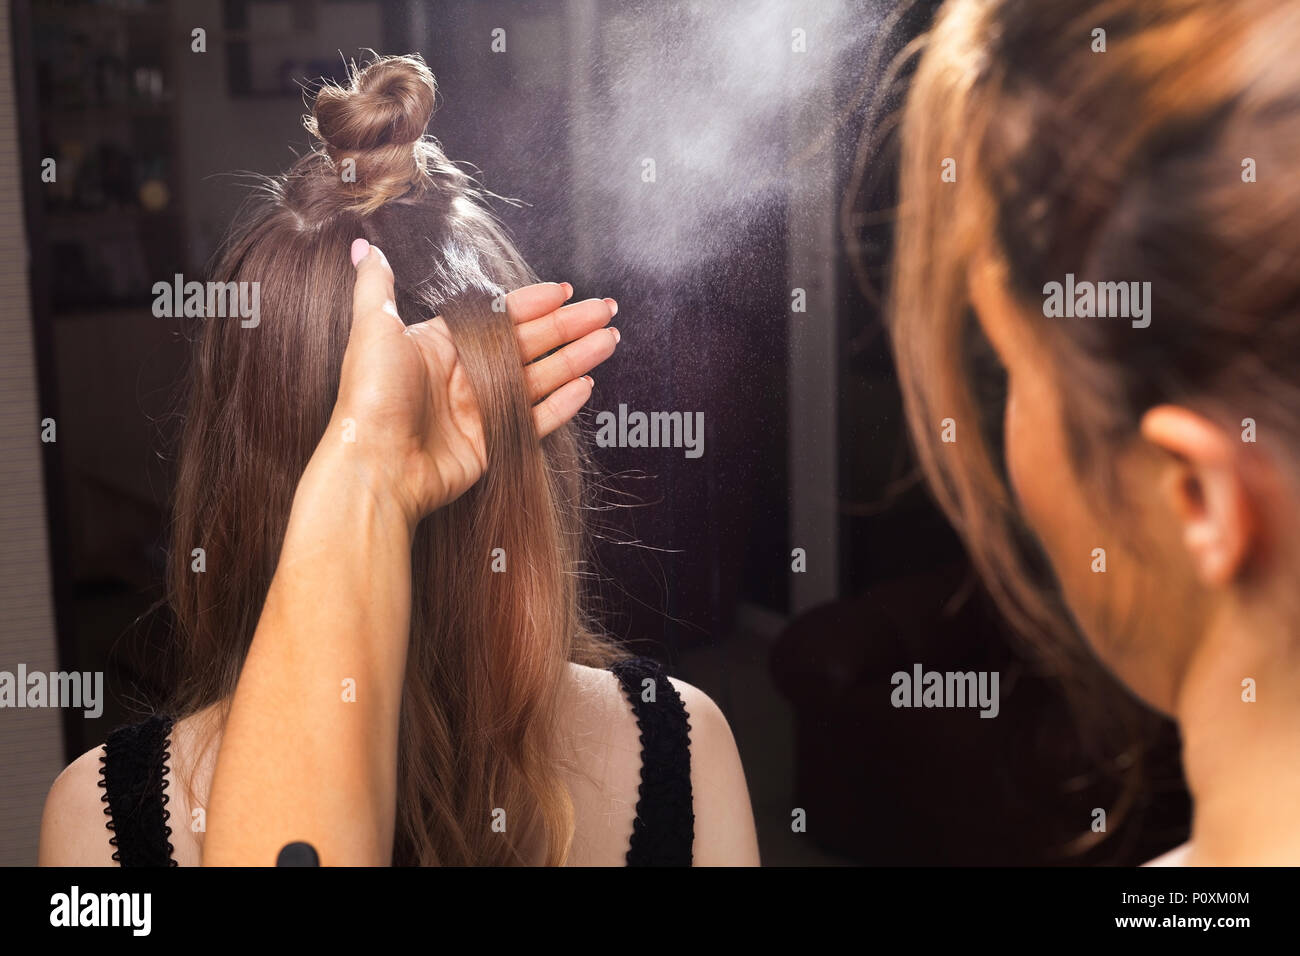 hairdresser fixing hair of a model with a hairspray - Stock Image